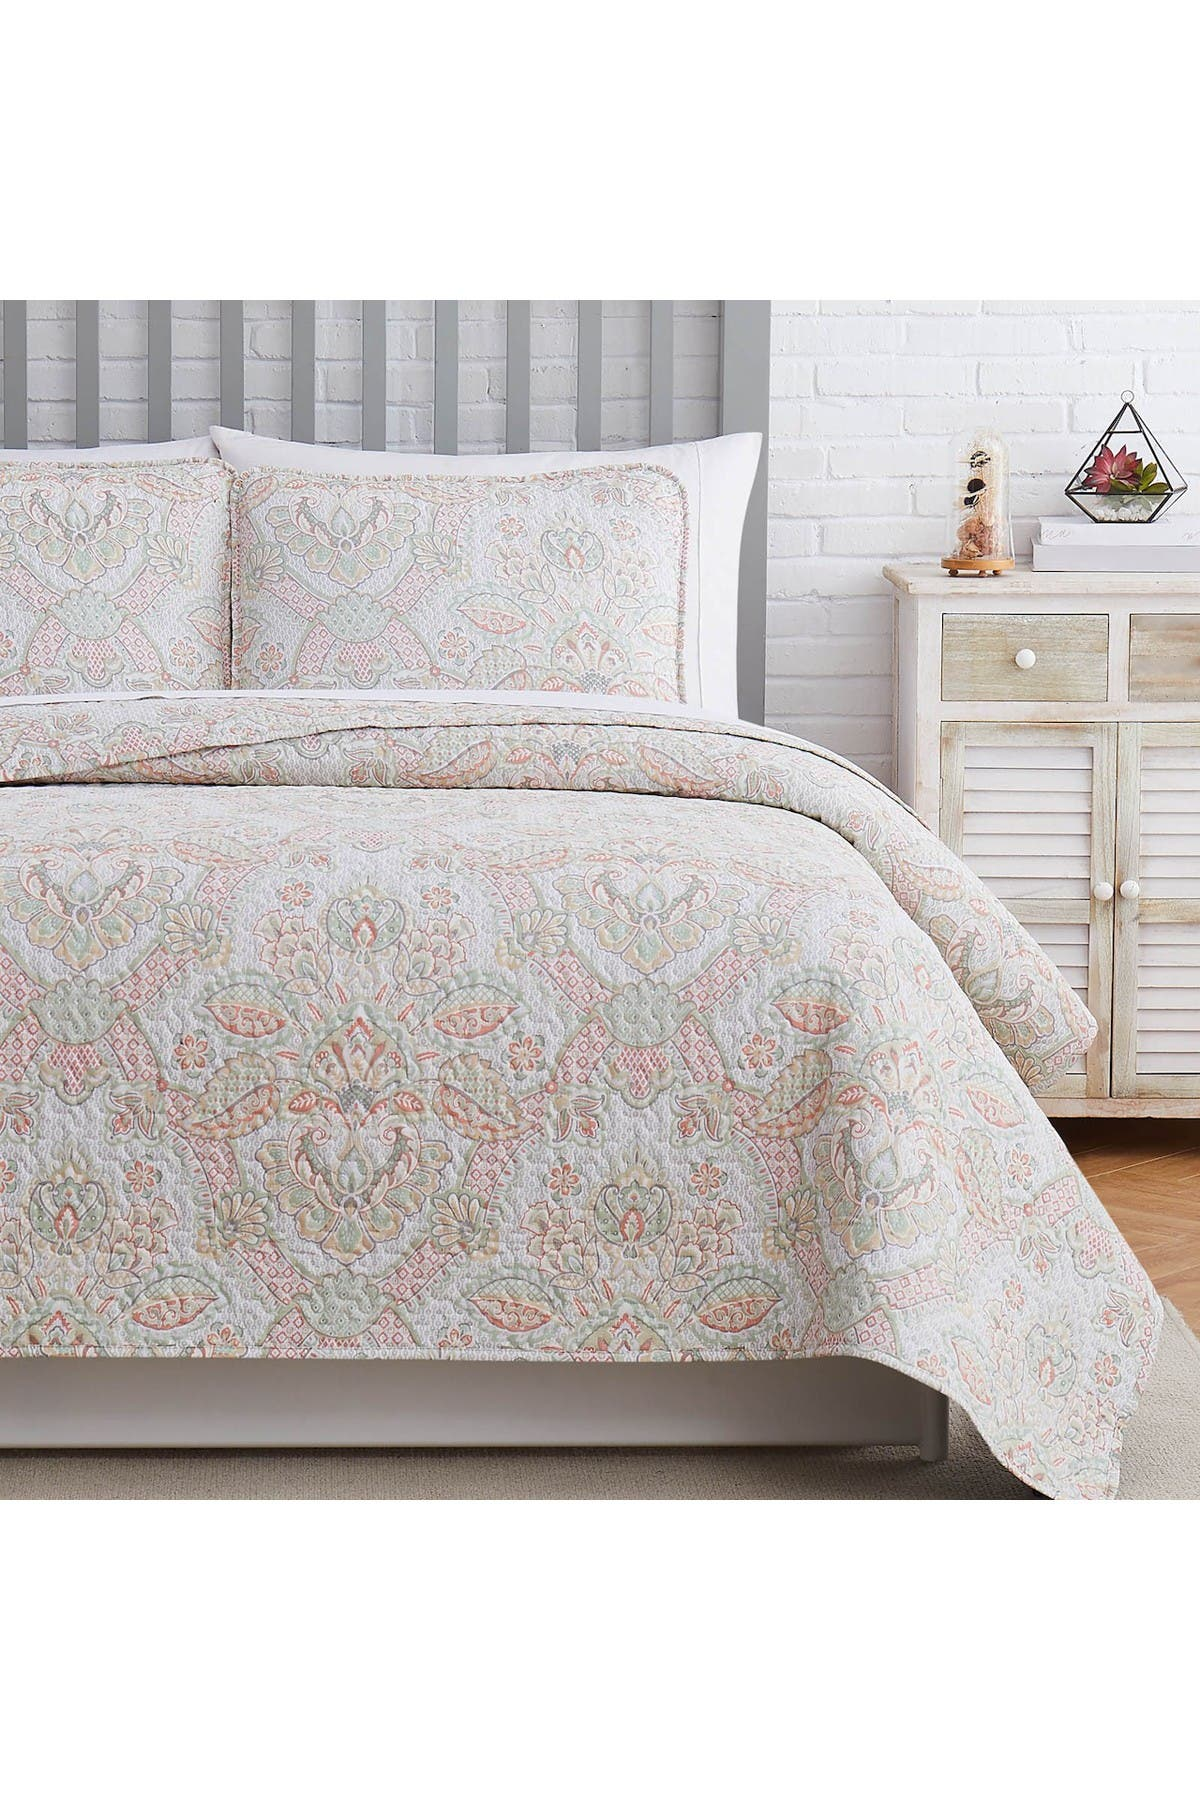 Image of SOUTHSHORE FINE LINENS Enchantment Oversized Quilt Cover Set - Coral - King/California King